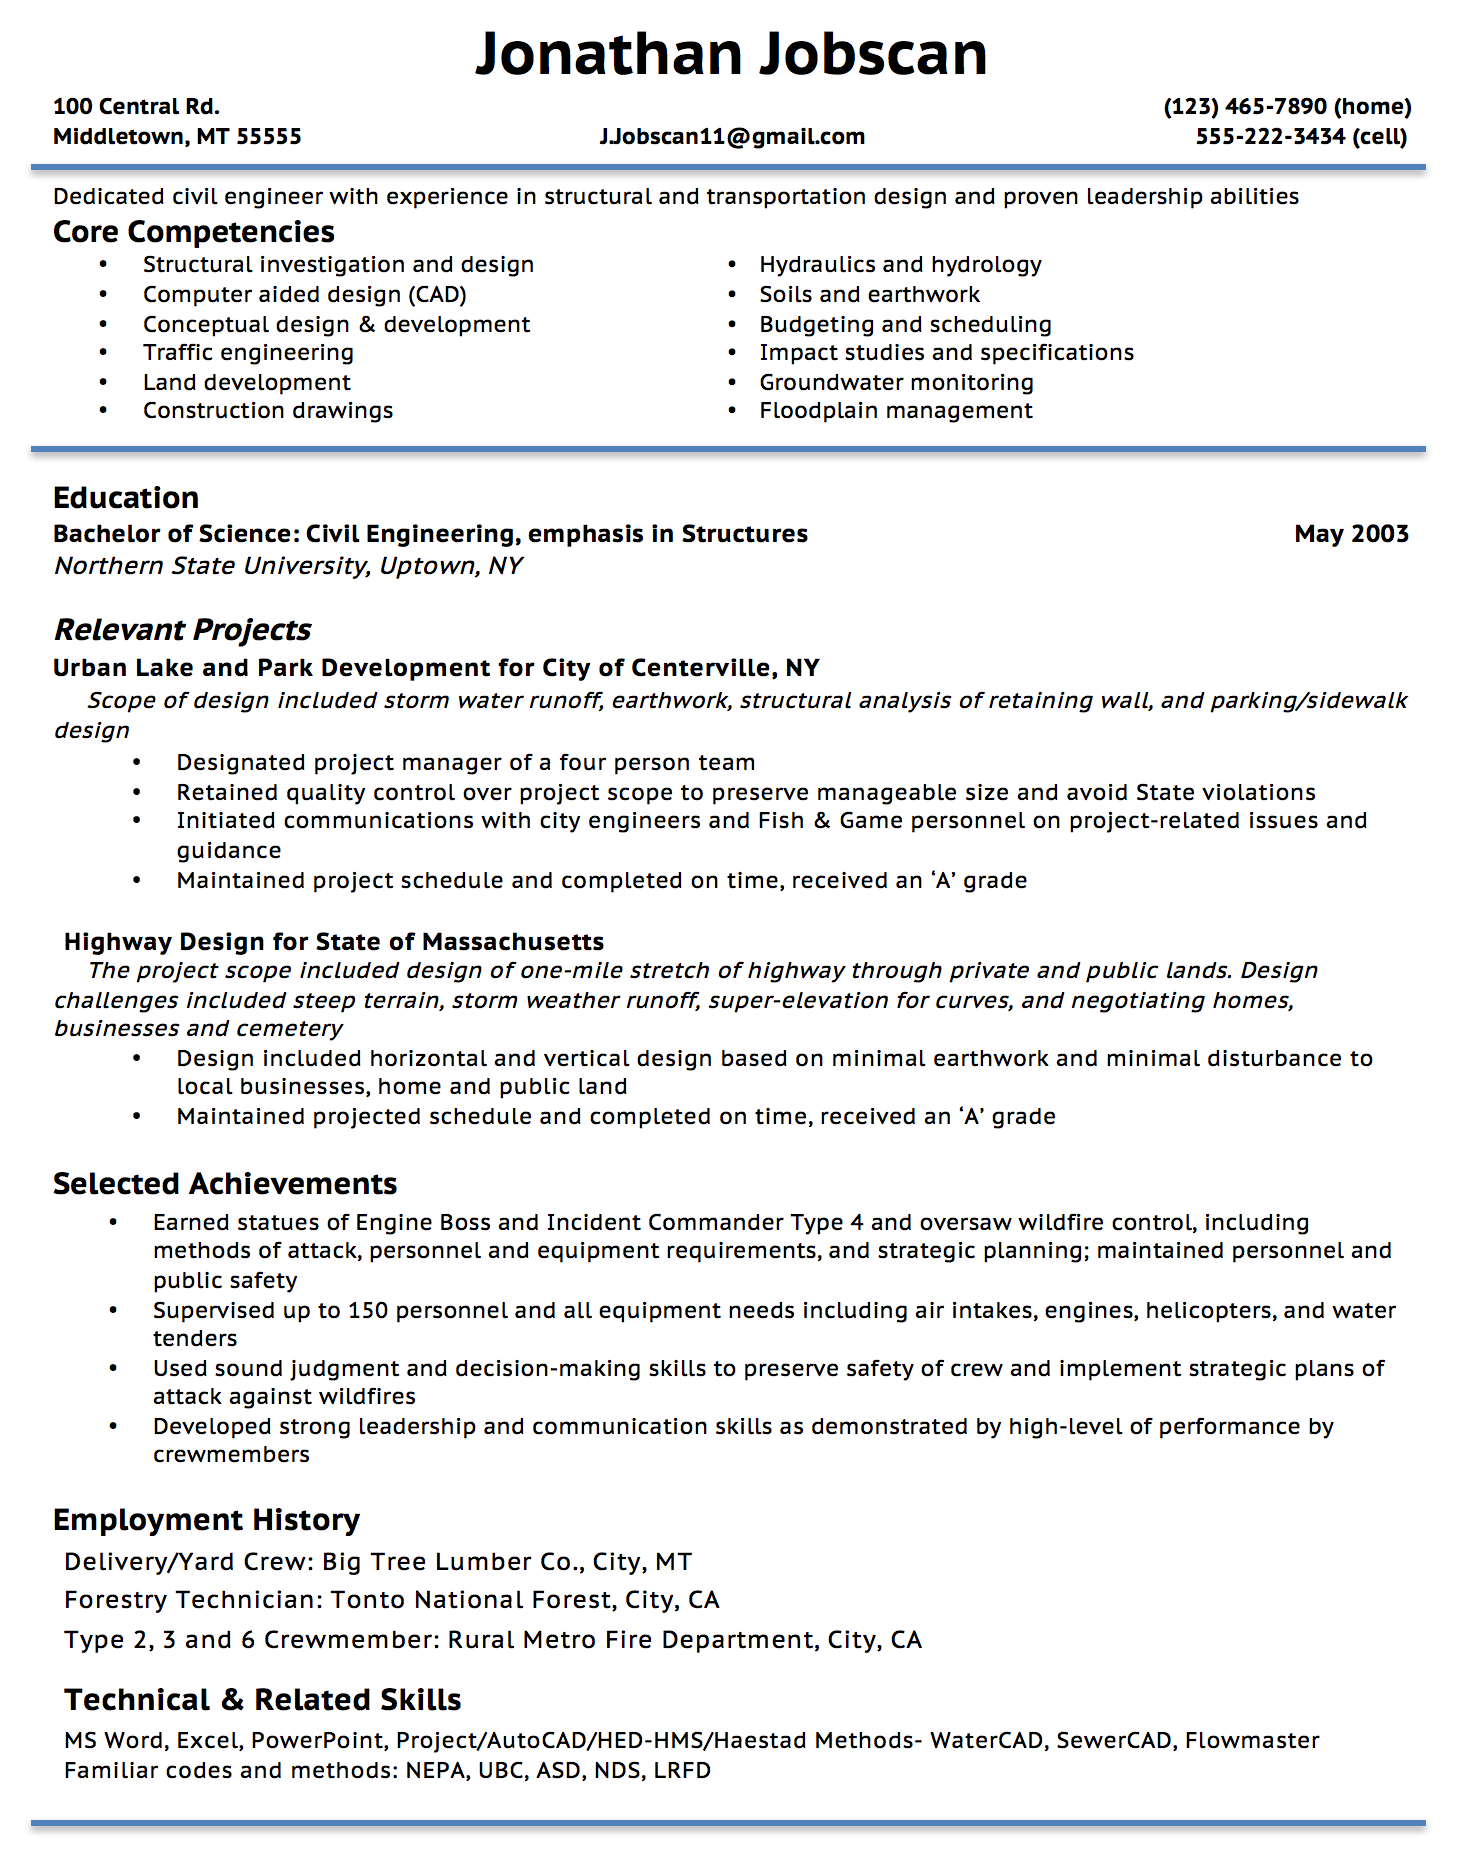 Opposenewapstandardsus  Picturesque Resume Writing Guide  Jobscan With Exciting Example Of A Functional Resume Format With Awesome Resume For Retail Jobs Also Misha Collins Resume In Addition Objective Examples For Resumes And What To Put On A College Resume As Well As Resume For Retail Job Additionally Business Operations Manager Resume From Jobscanco With Opposenewapstandardsus  Exciting Resume Writing Guide  Jobscan With Awesome Example Of A Functional Resume Format And Picturesque Resume For Retail Jobs Also Misha Collins Resume In Addition Objective Examples For Resumes From Jobscanco